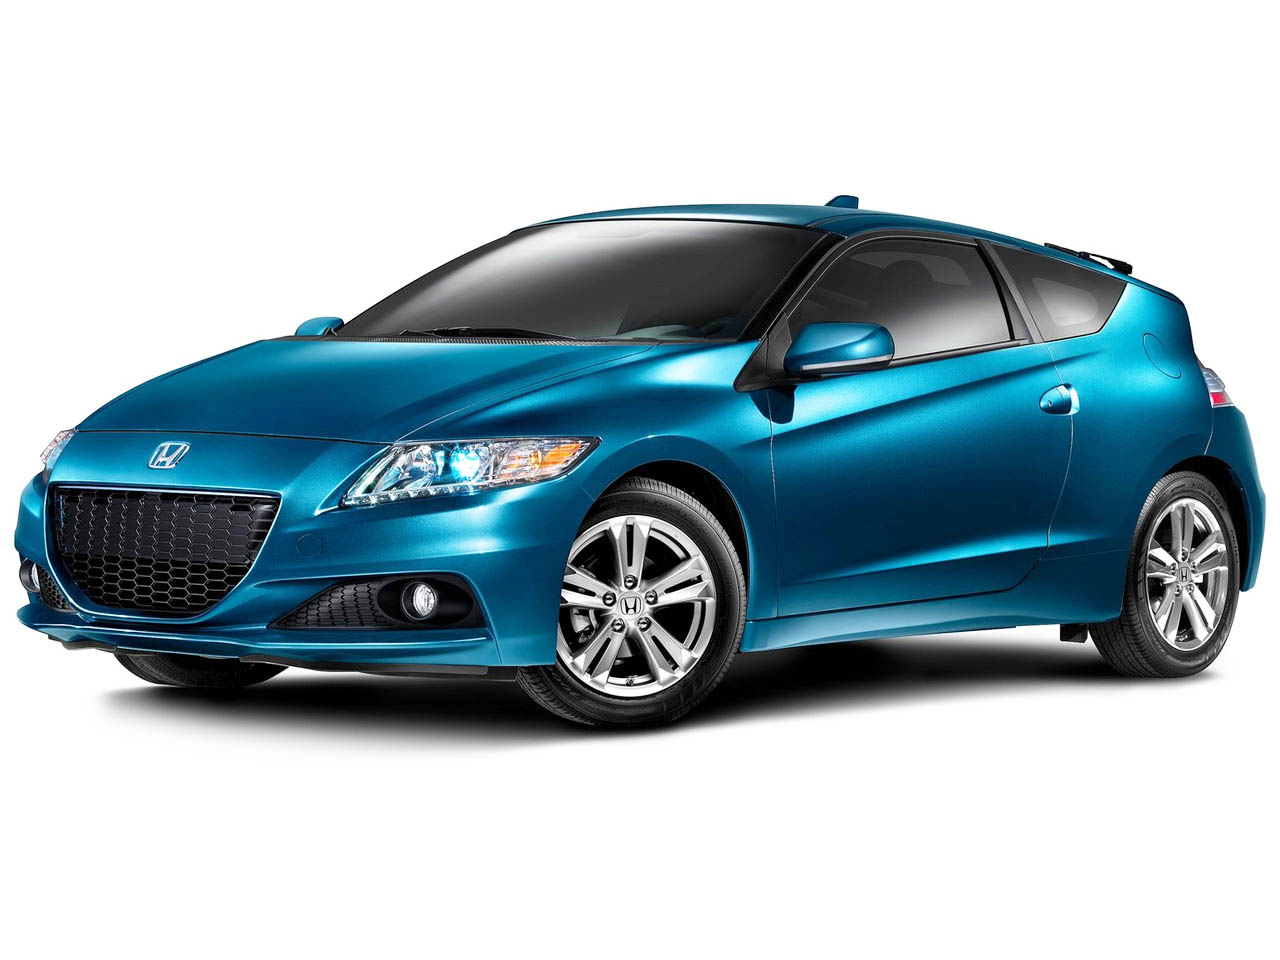 Honda Cr Z Smart Car Manufacured By